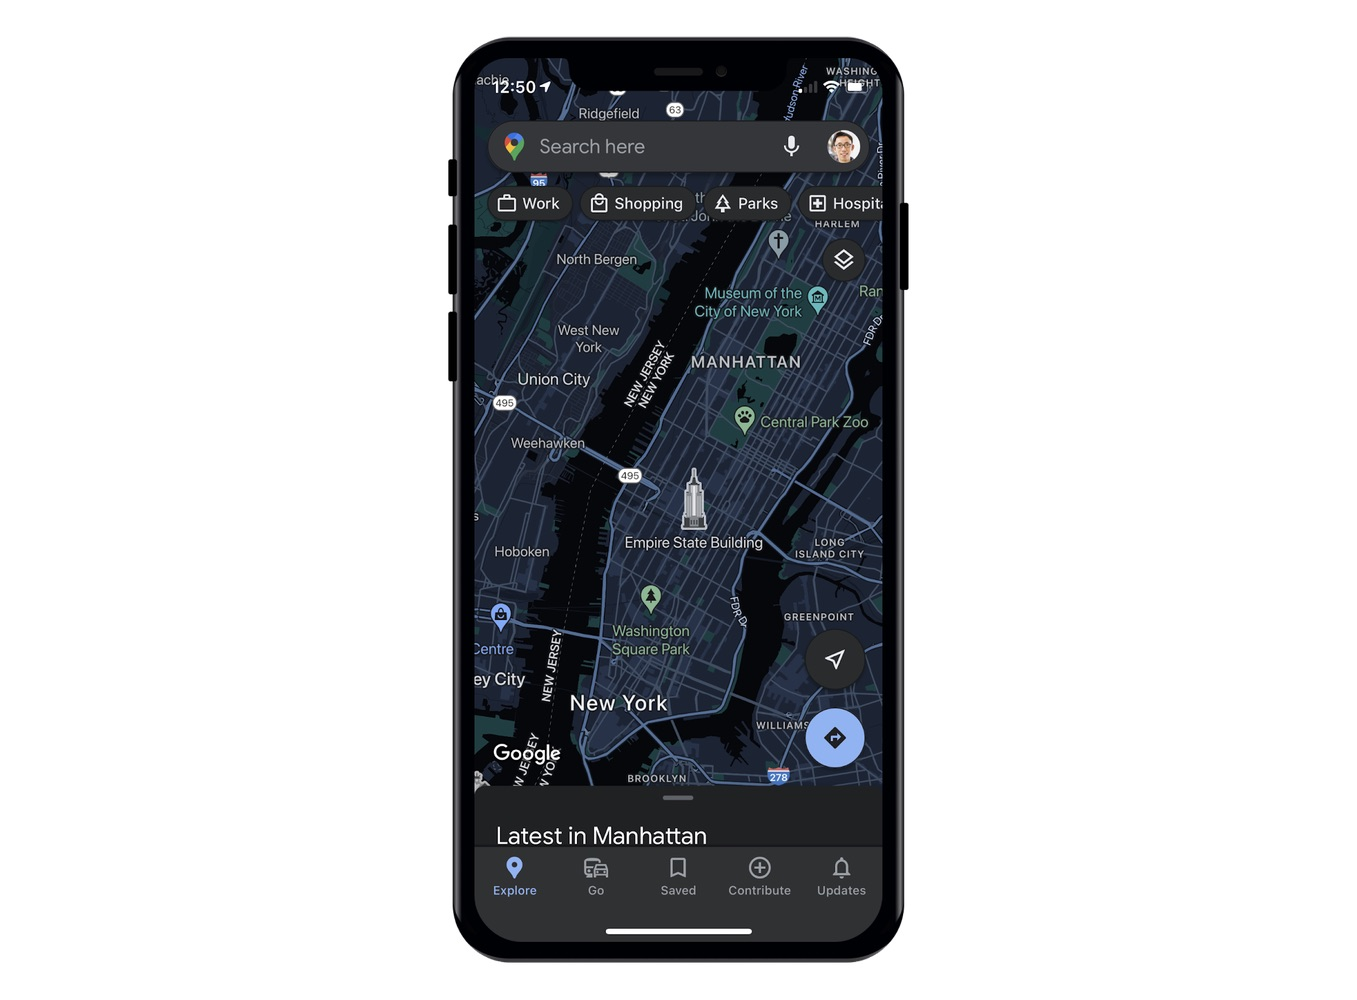 Google Maps donkere modus op iPhone.